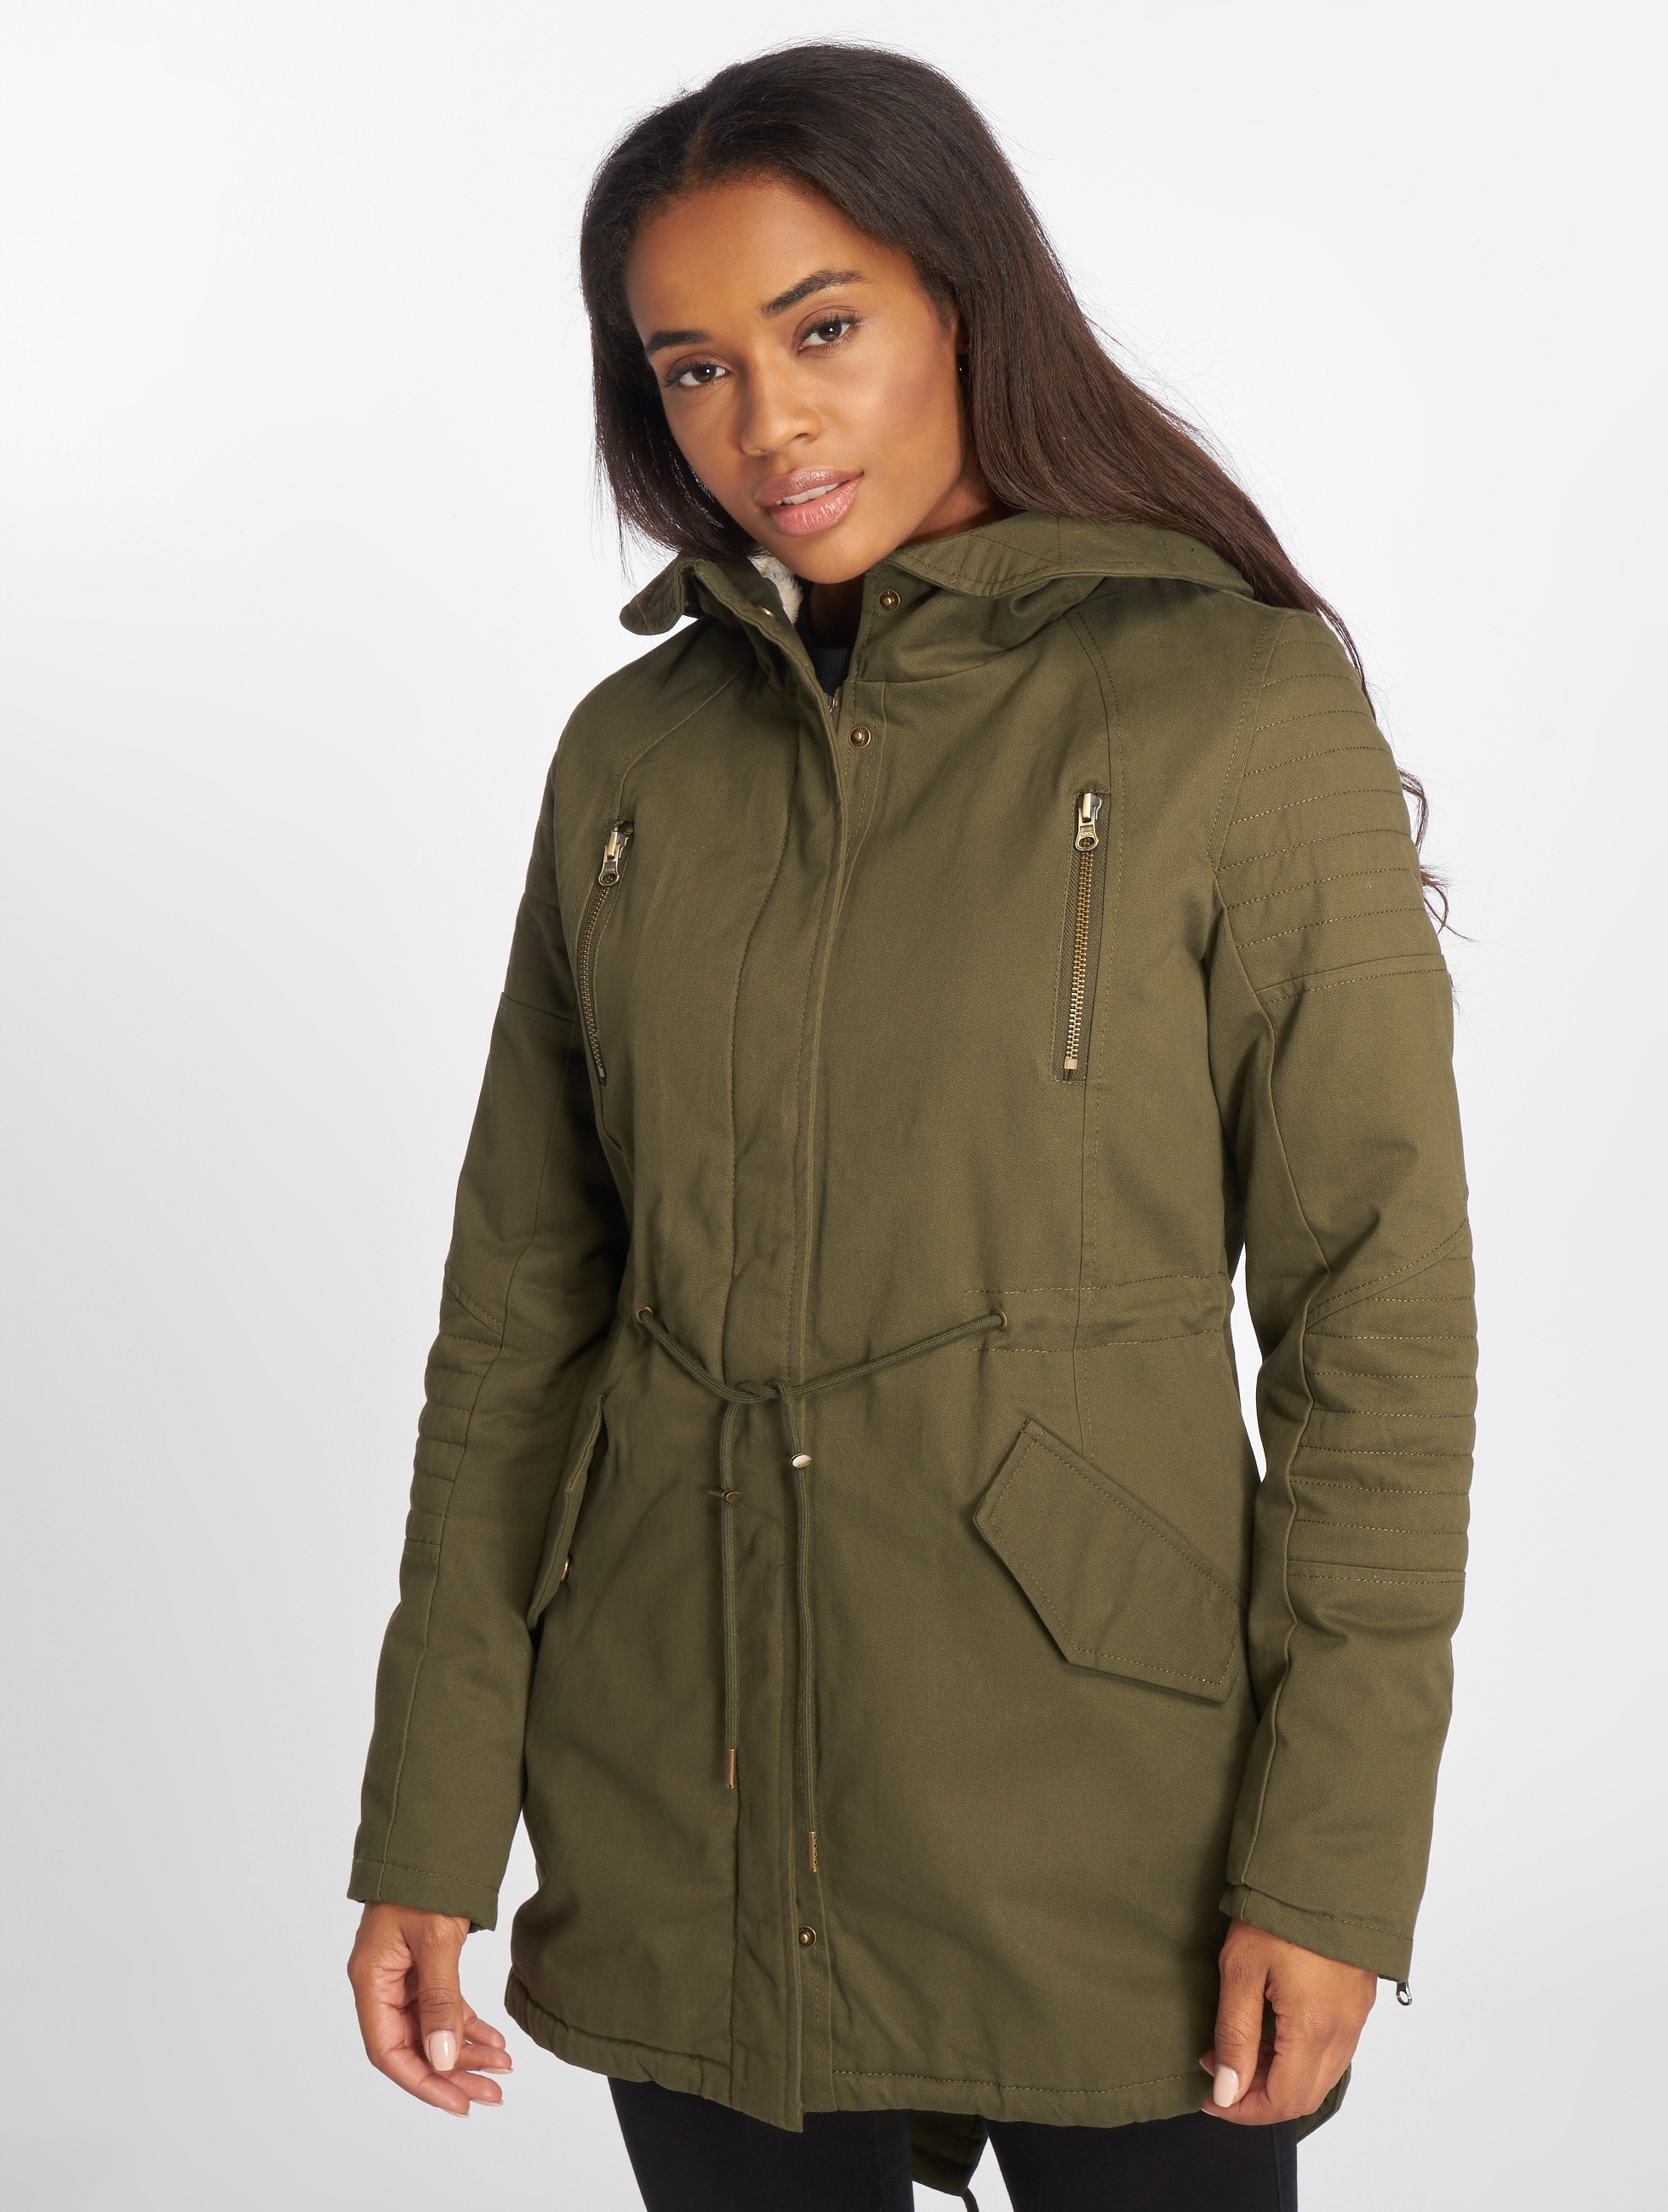 Urban Classics Talvitakit Ladies Sherpa Lined Cotton oliivi